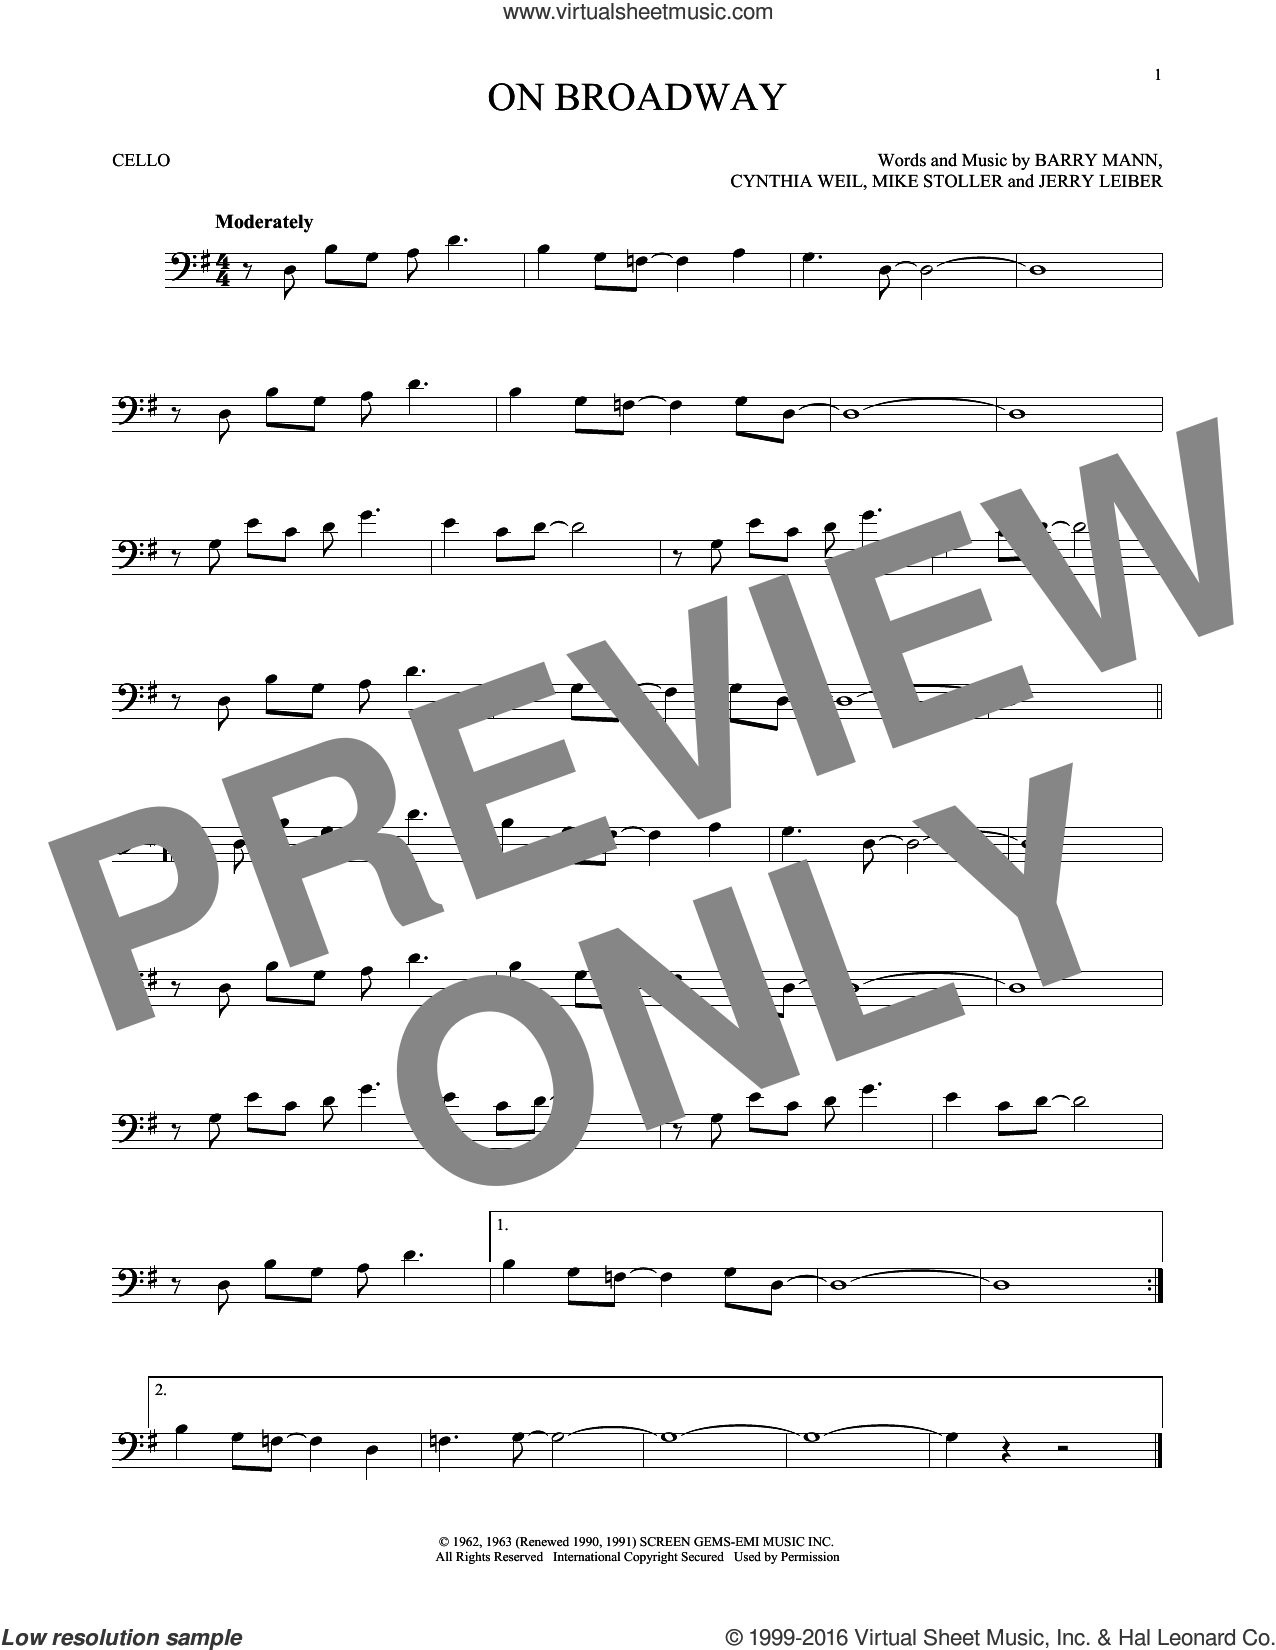 On Broadway sheet music for cello solo by George Benson, The Drifters, Barry Mann, Cynthia Weil, Jerry Leiber and Mike Stoller, intermediate skill level